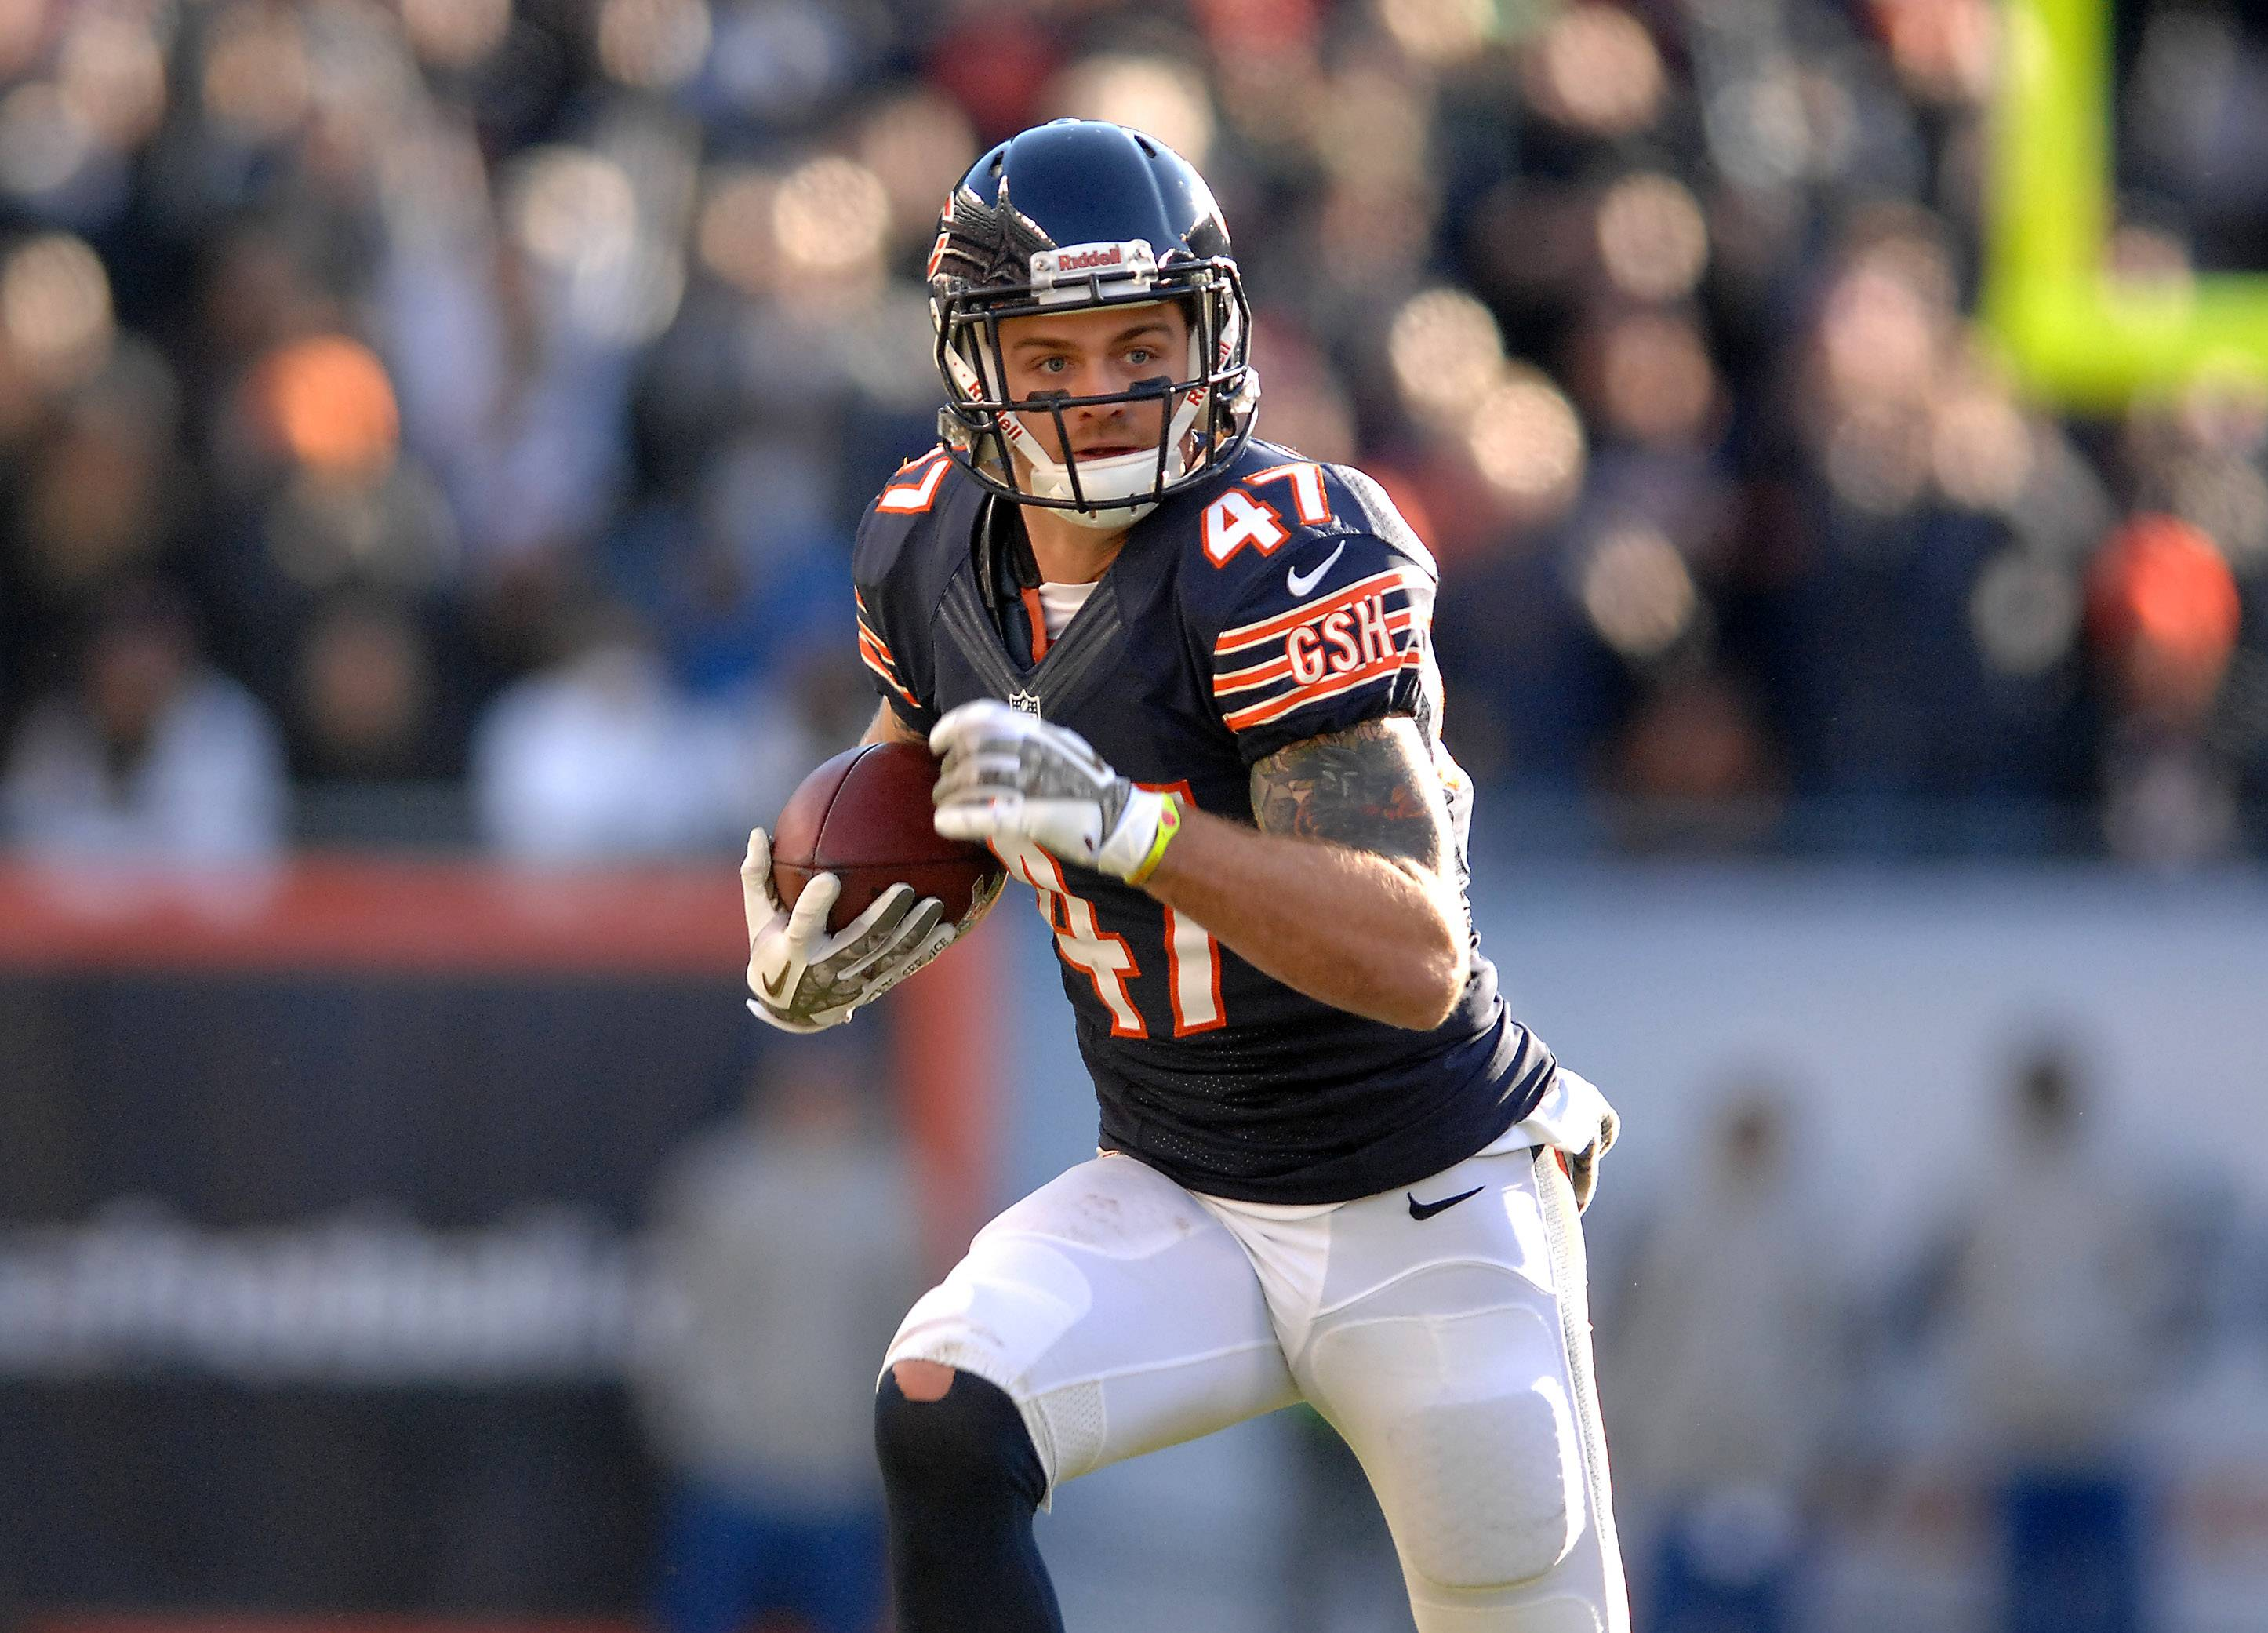 Safety Chris Conte is expected to see his first preseason action Friday night when the Bears visit the Seahawks.